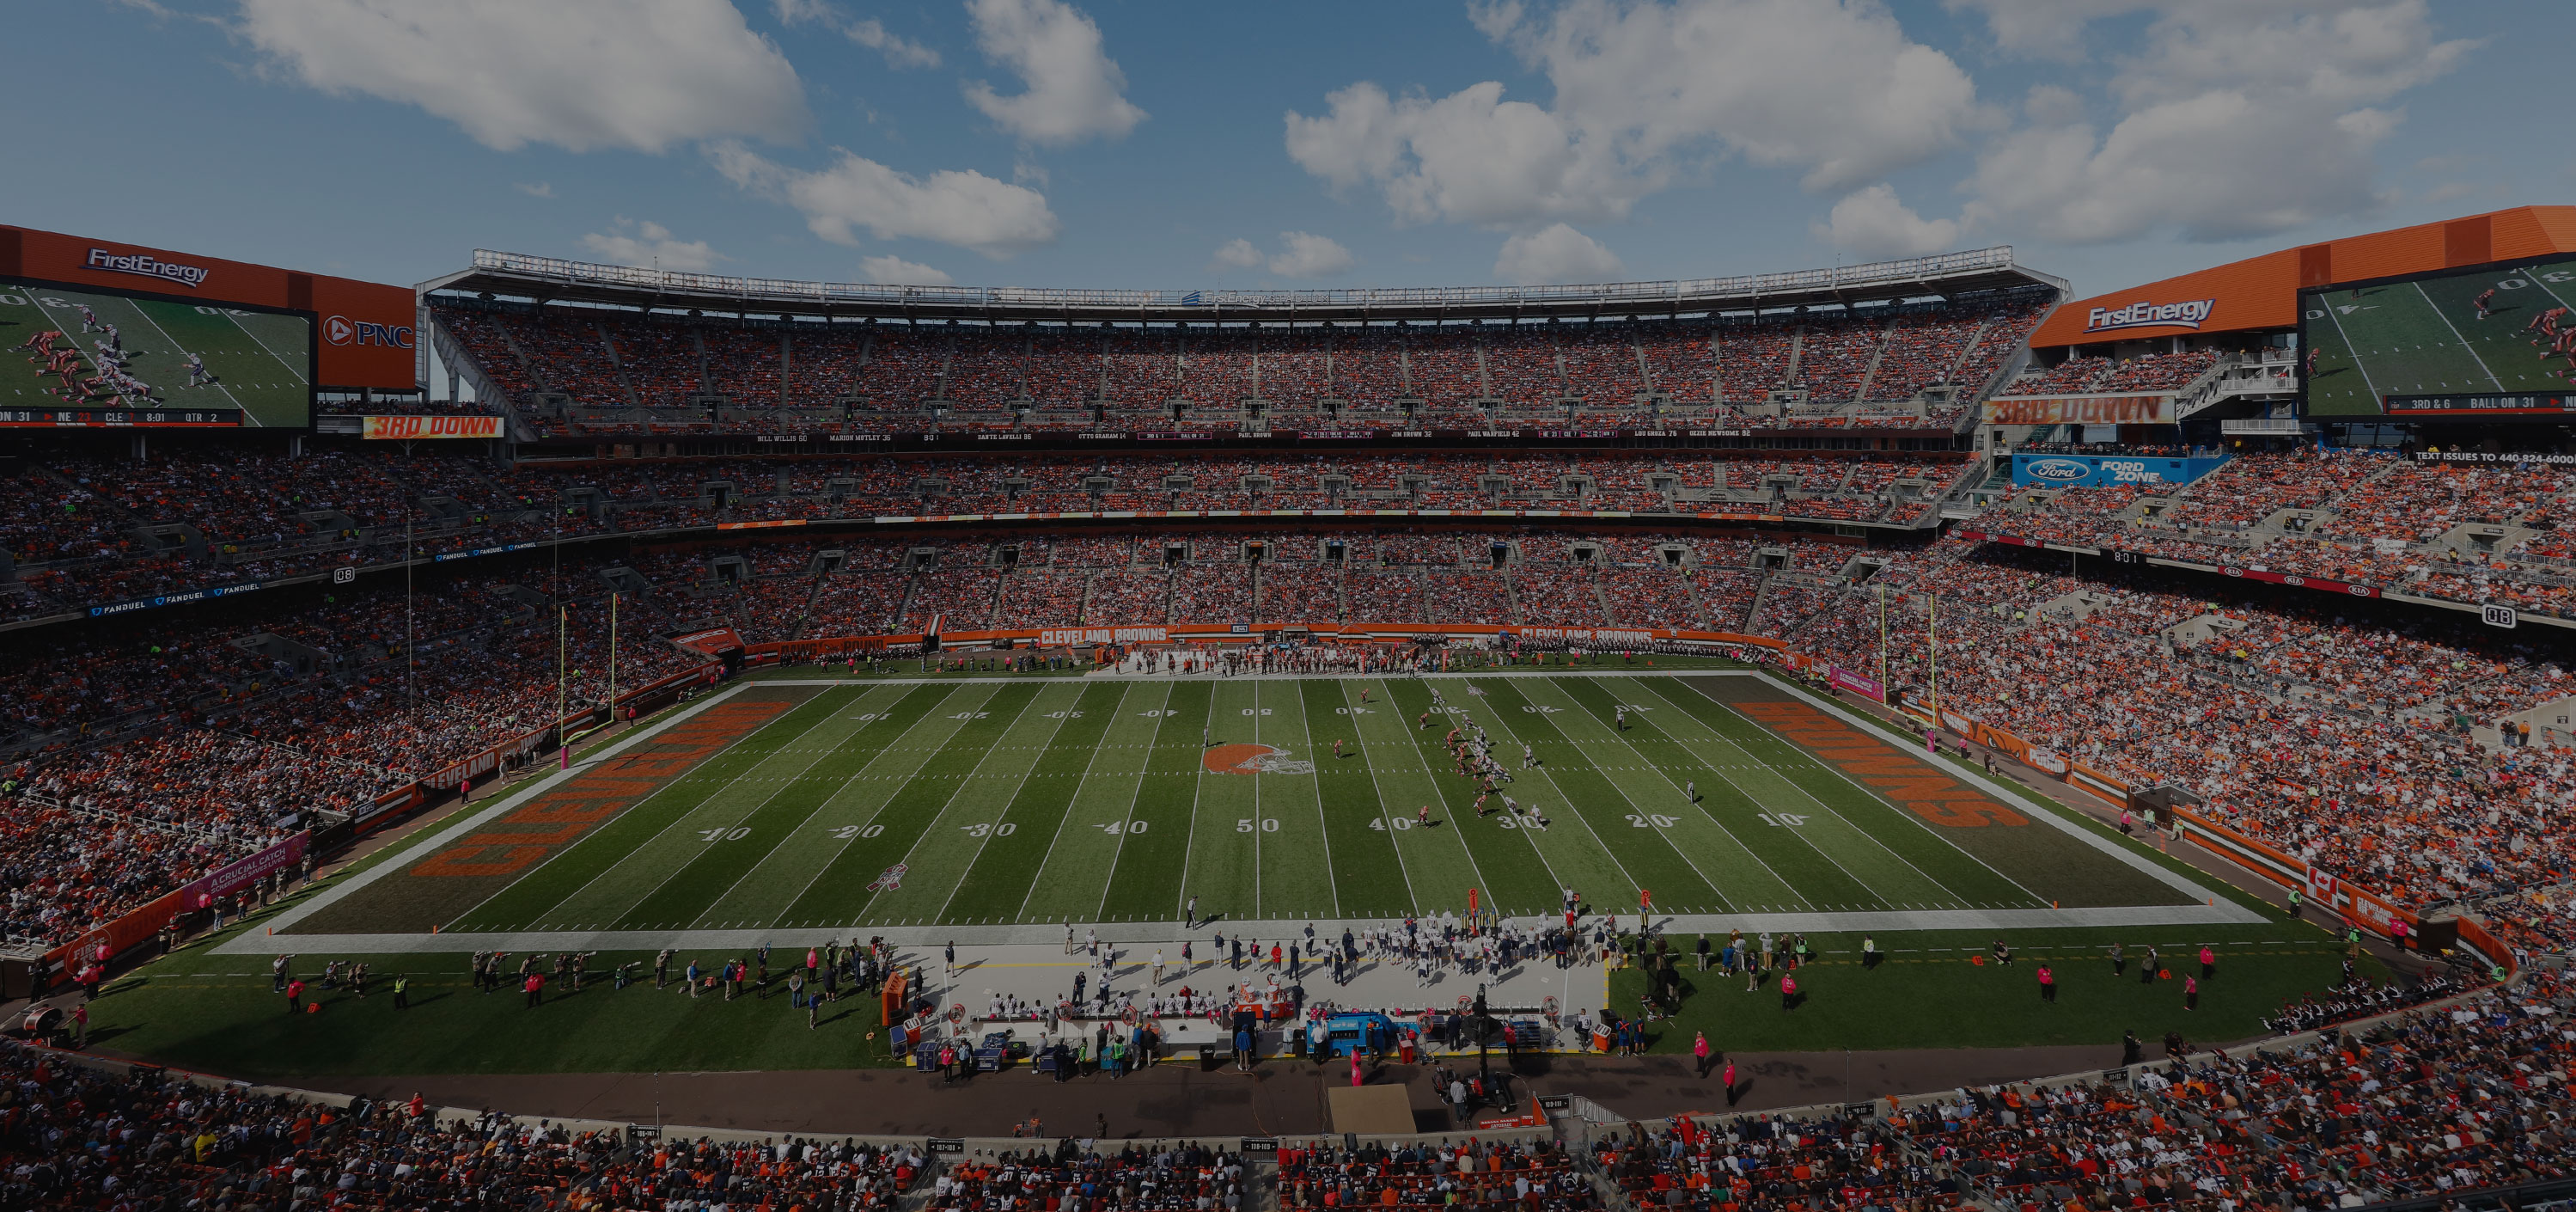 FirstEnergy Stadium in Cleveland, OH - Home of the Cleveland Browns